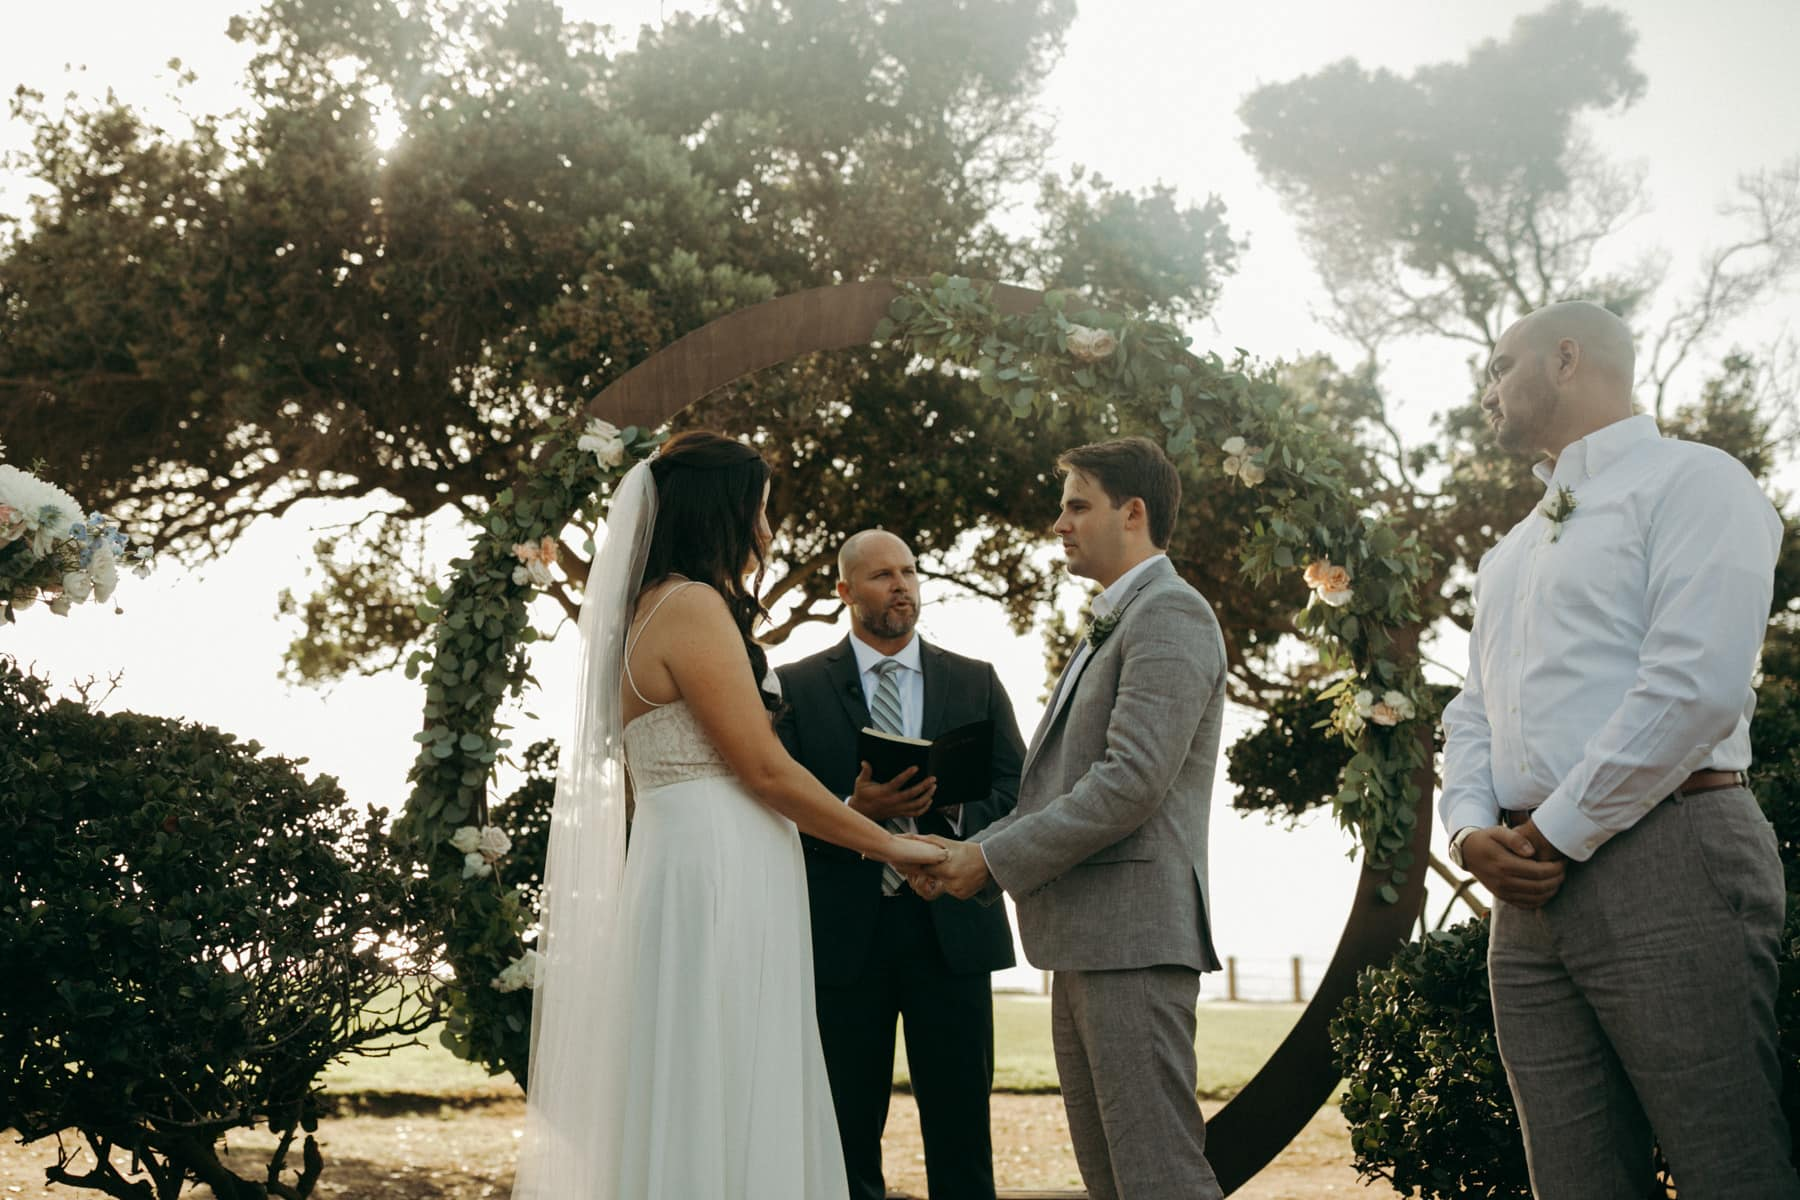 destination wedding at ellen browning scripps park